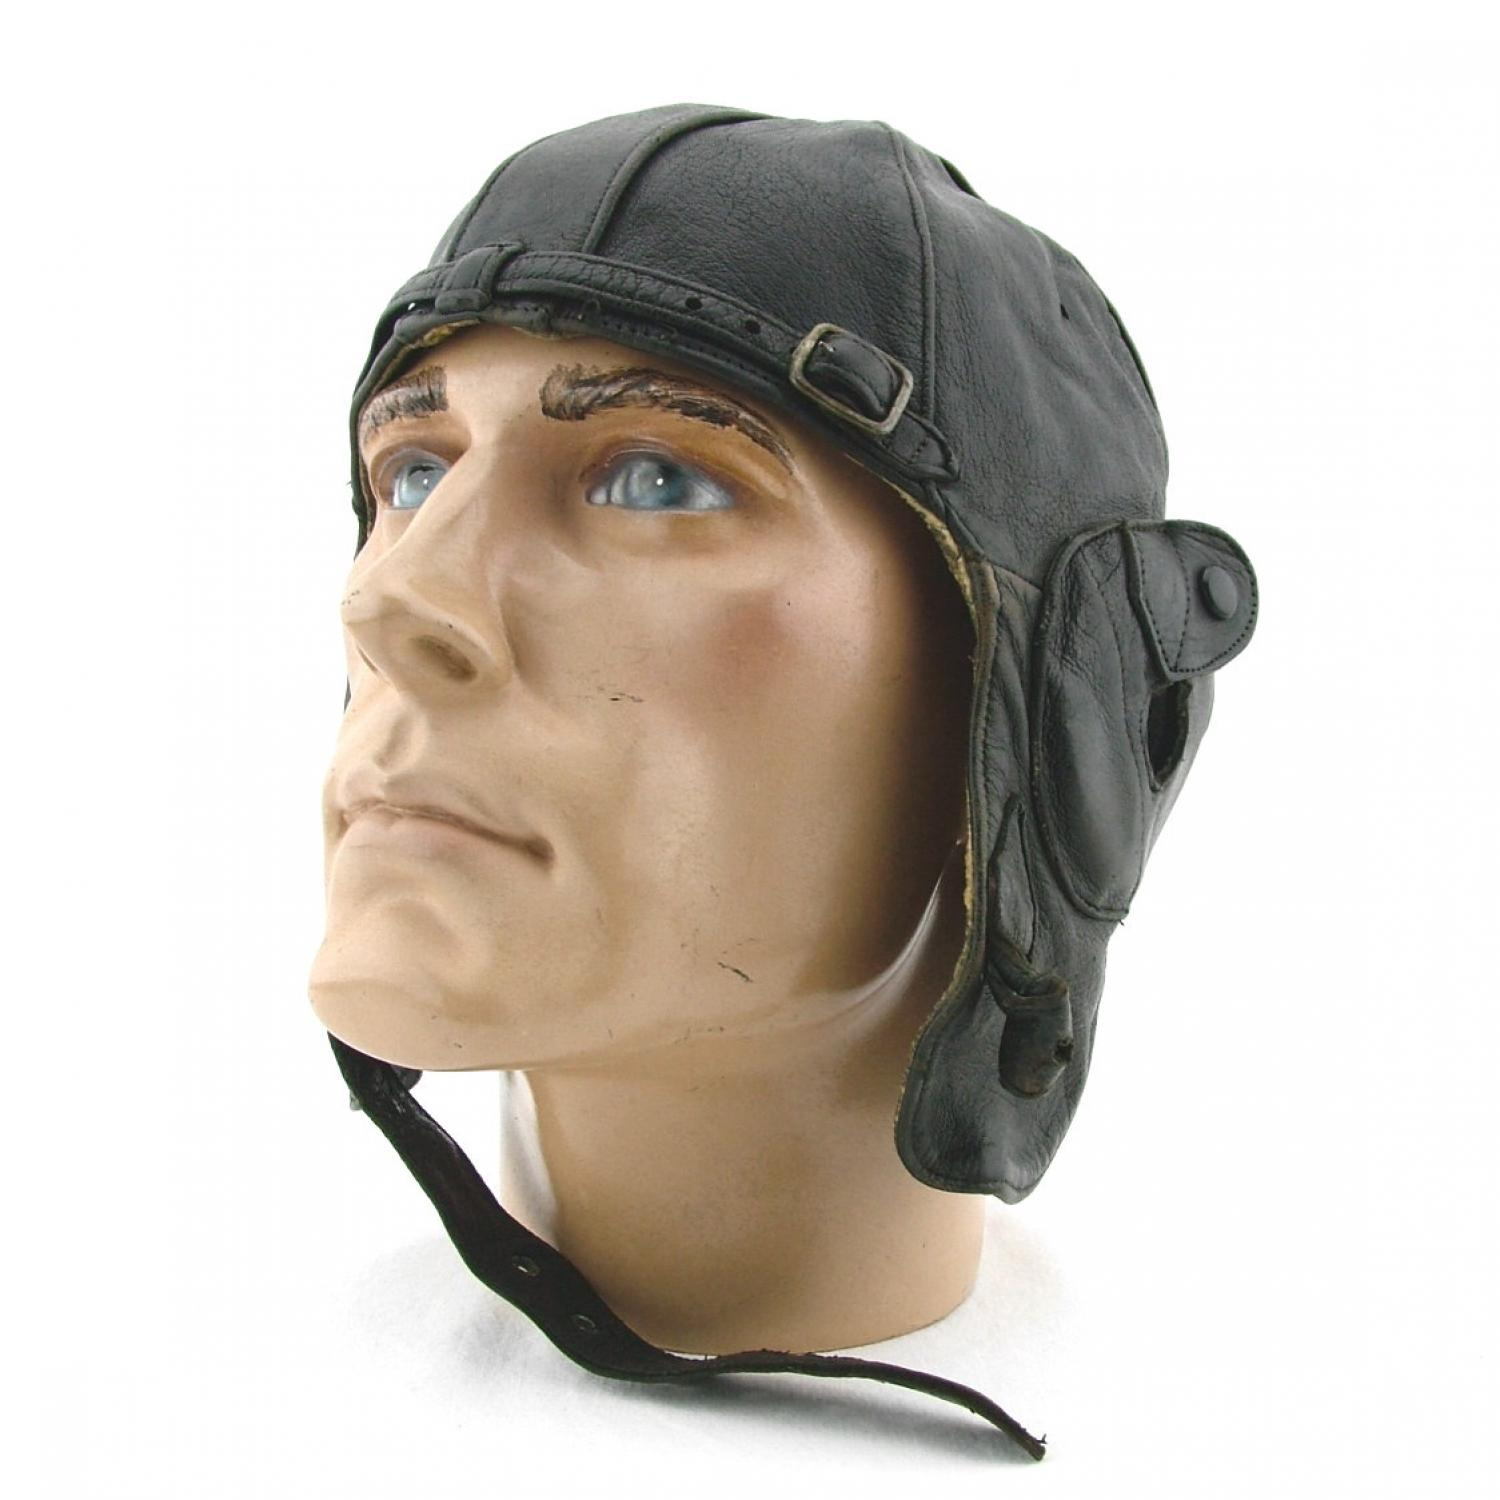 1930s private purchase Lewis flying helmet